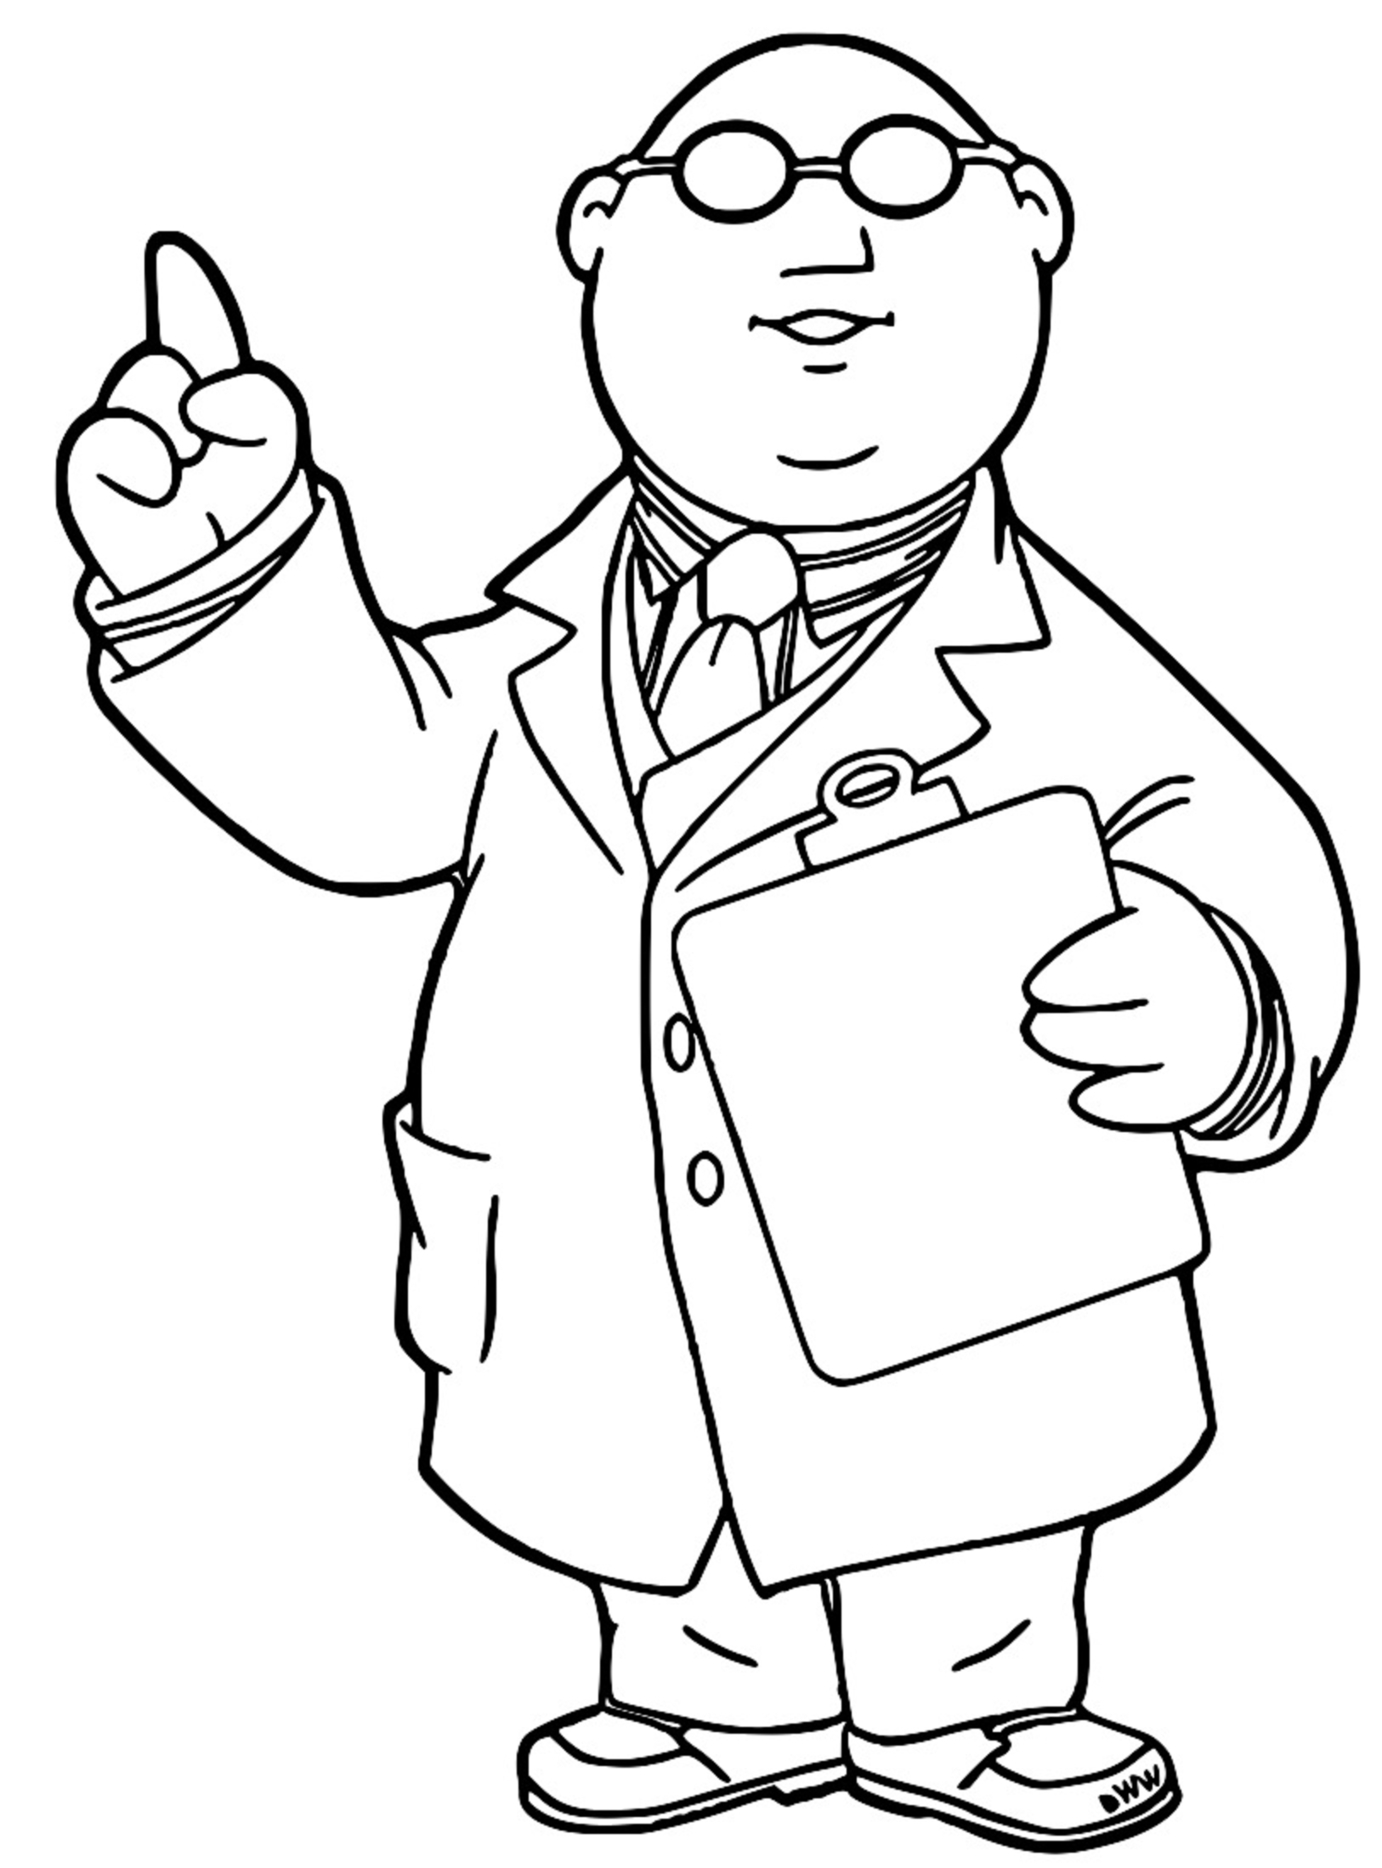 The Muppets honeydew Cartoon Coloring Page